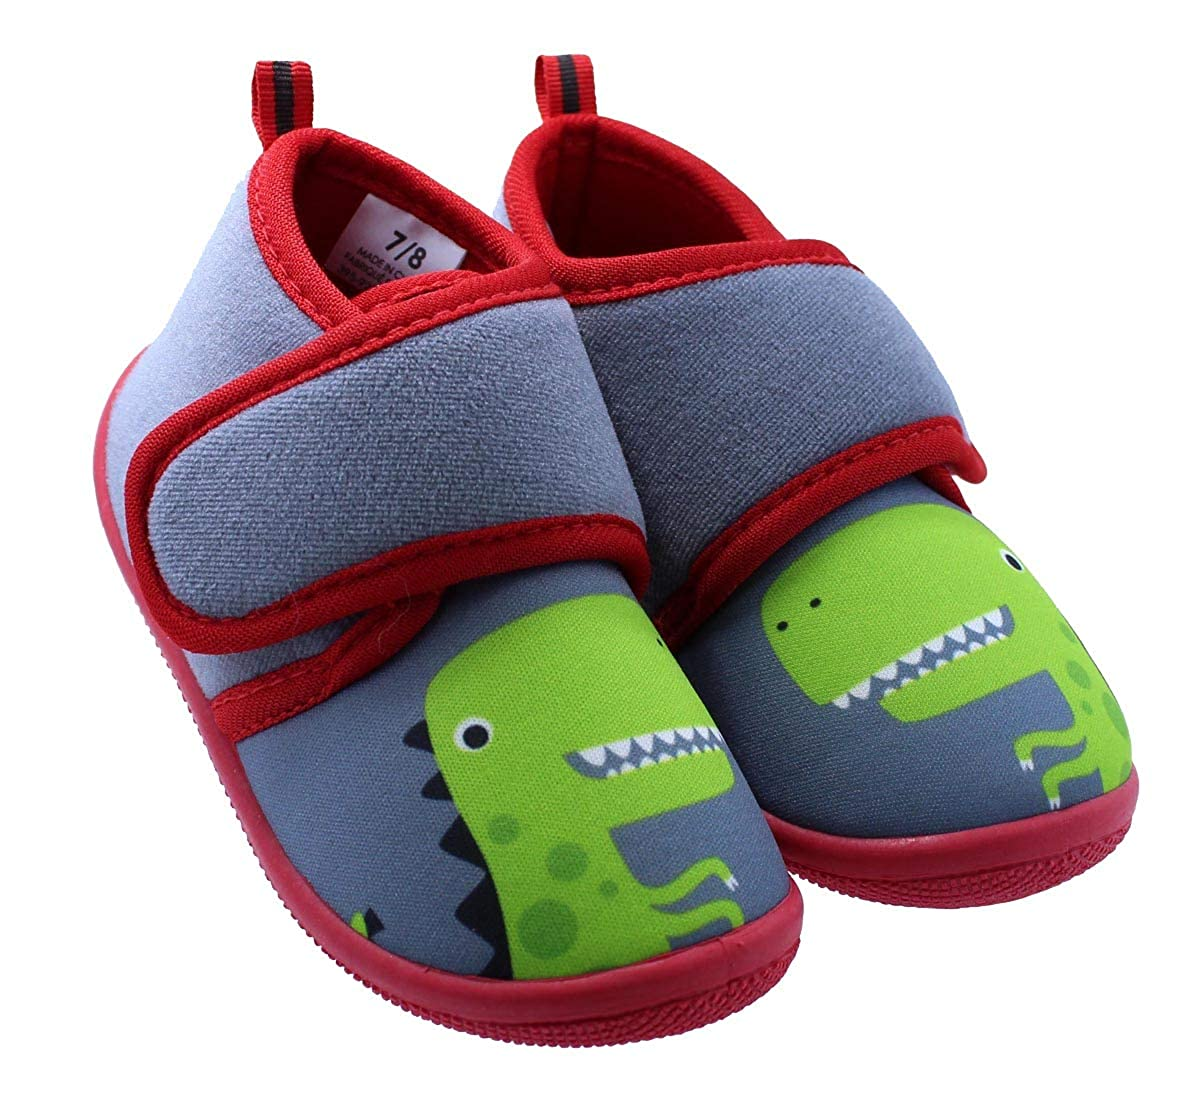 Black and White Dinosaur Toddler Boy's Daycare Slippers